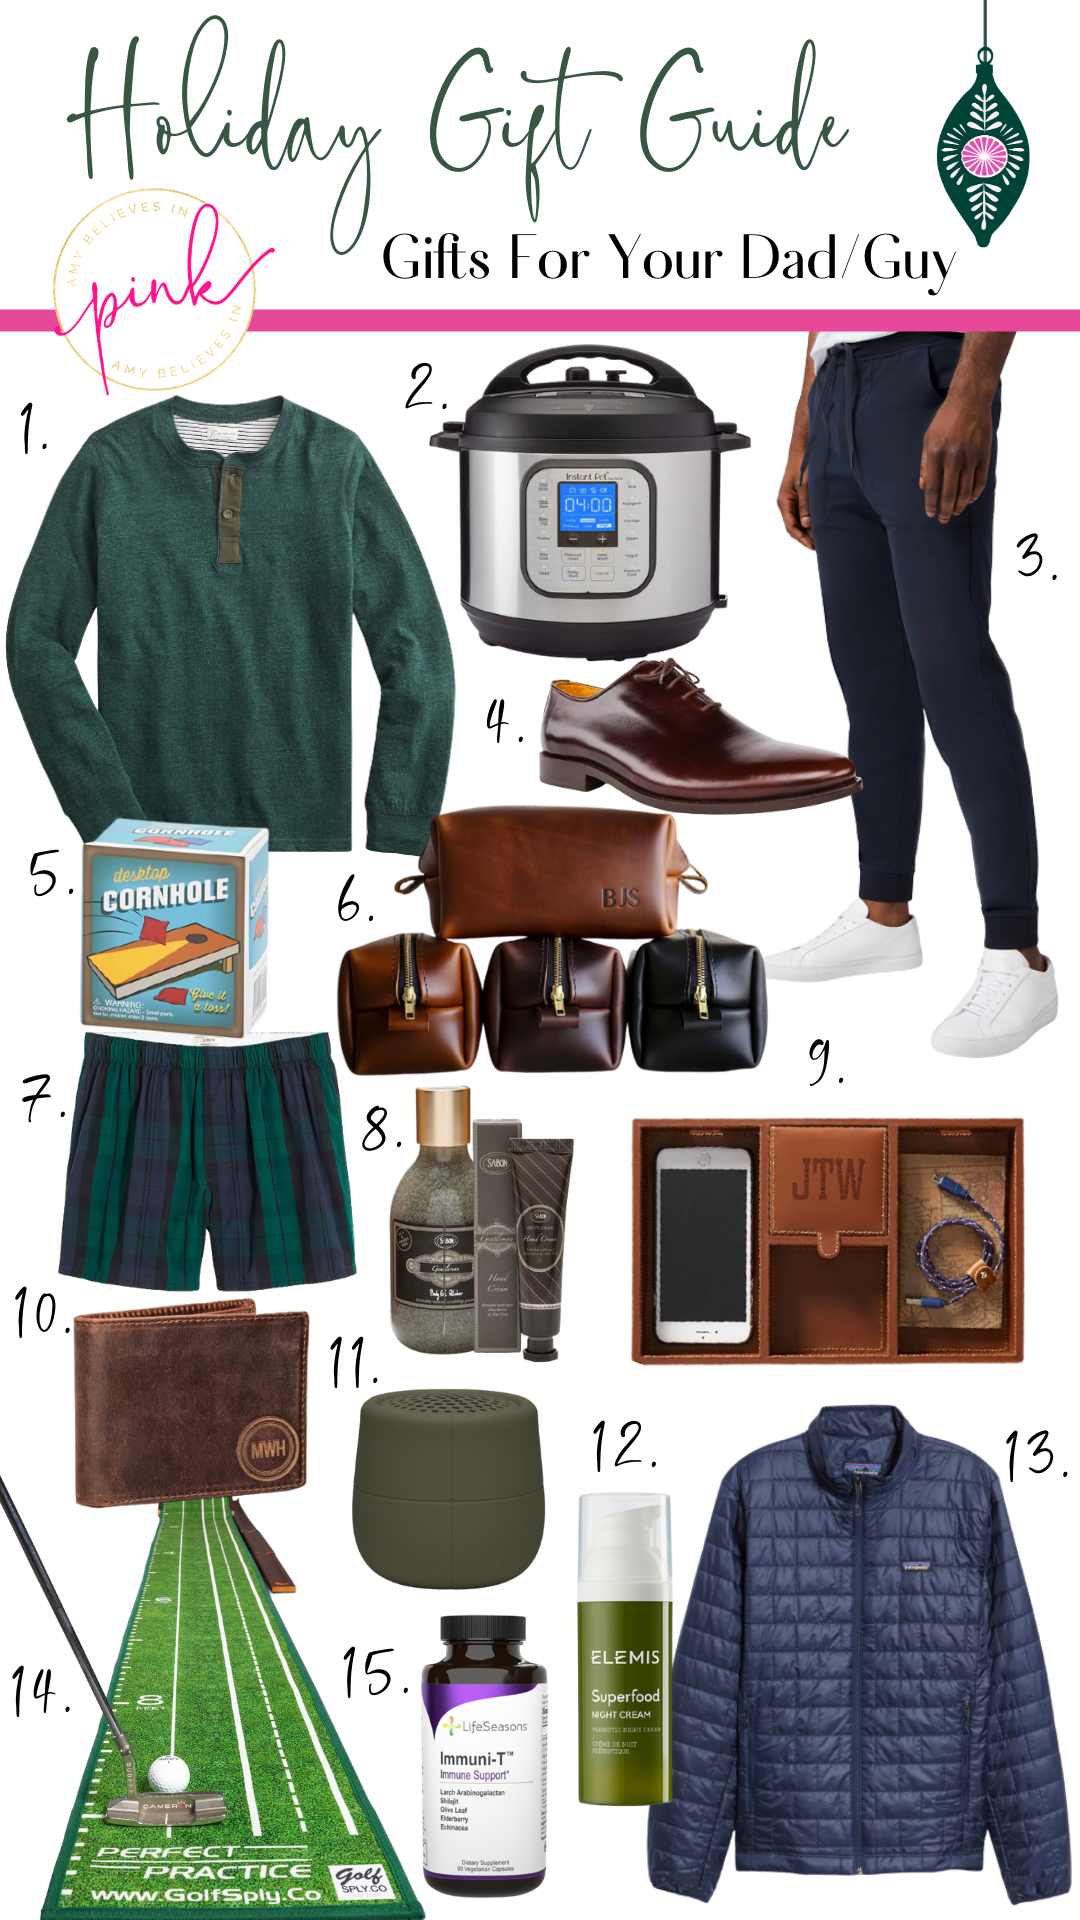 Holiday Gift Guide for your Dad/Guy